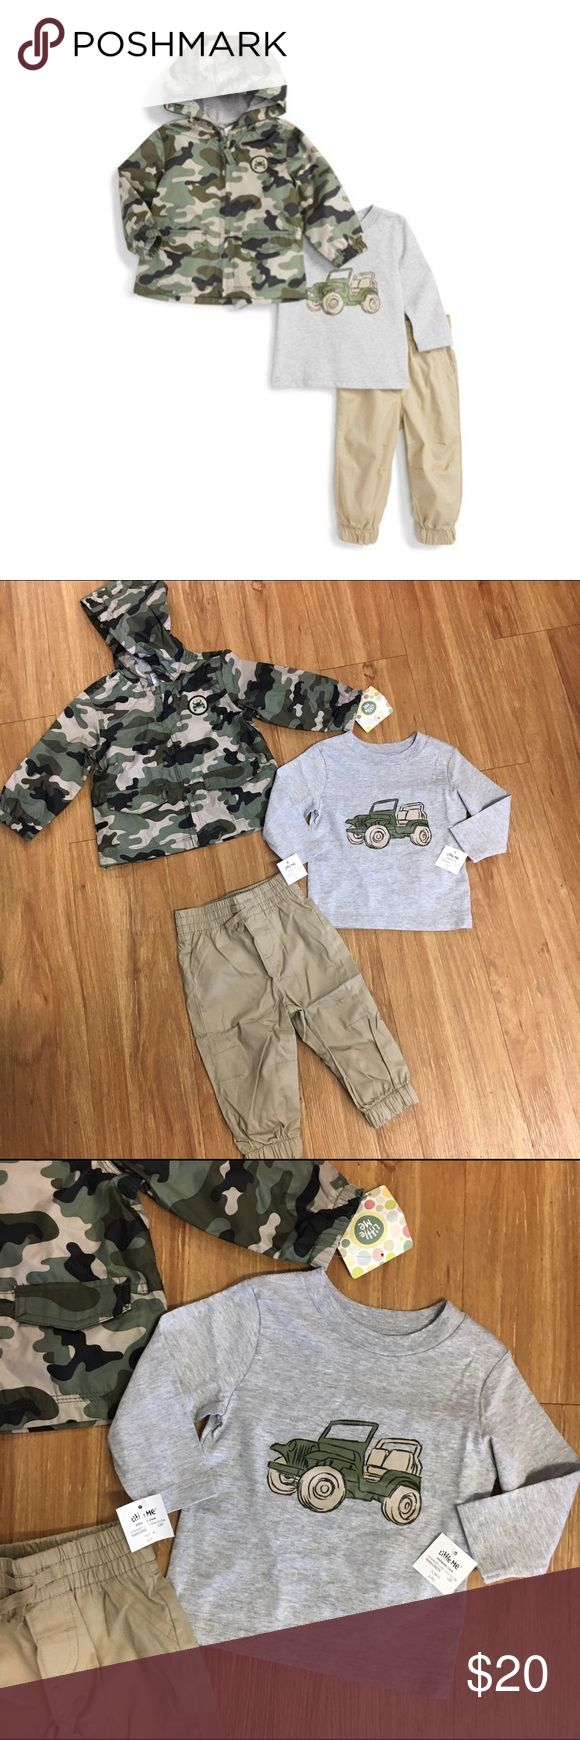 NEW NWT Little Me Outfit Camo Jeep 12 Mo Your little one will be ready for the great outdoors with a camo-print hooded jacket that features a cool patch. Pair it with the long-sleeve graphic T-shirt and khaki pants for a rugged-looking ensemble. * Jacket